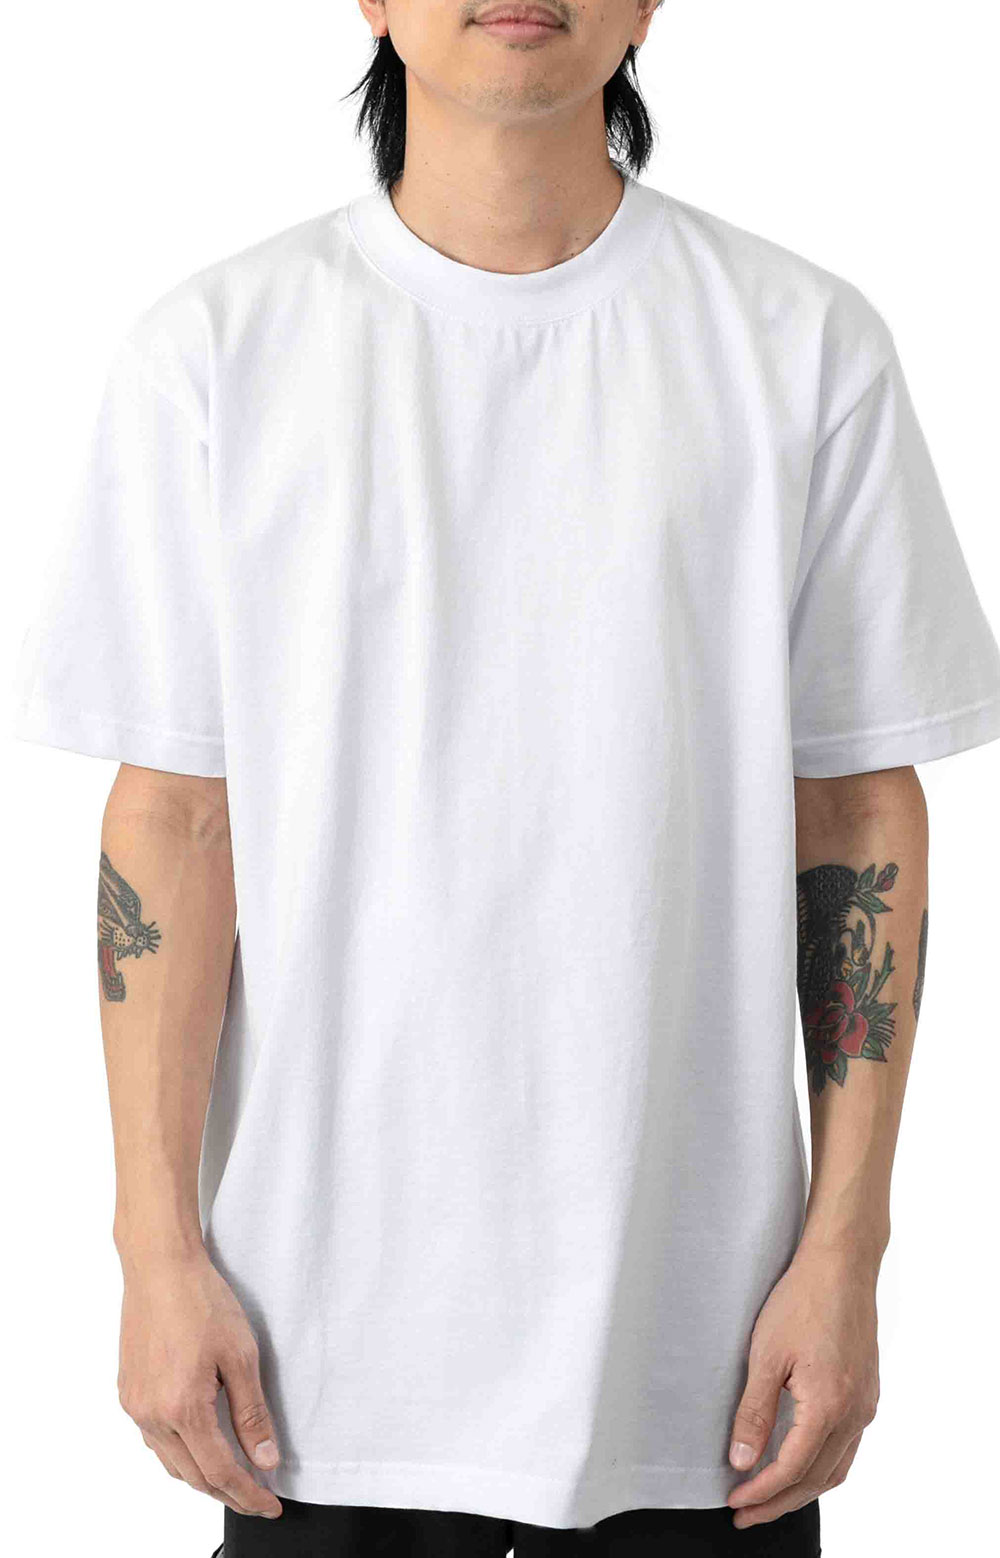 Max Heavyweight S/S T-Shirt - White